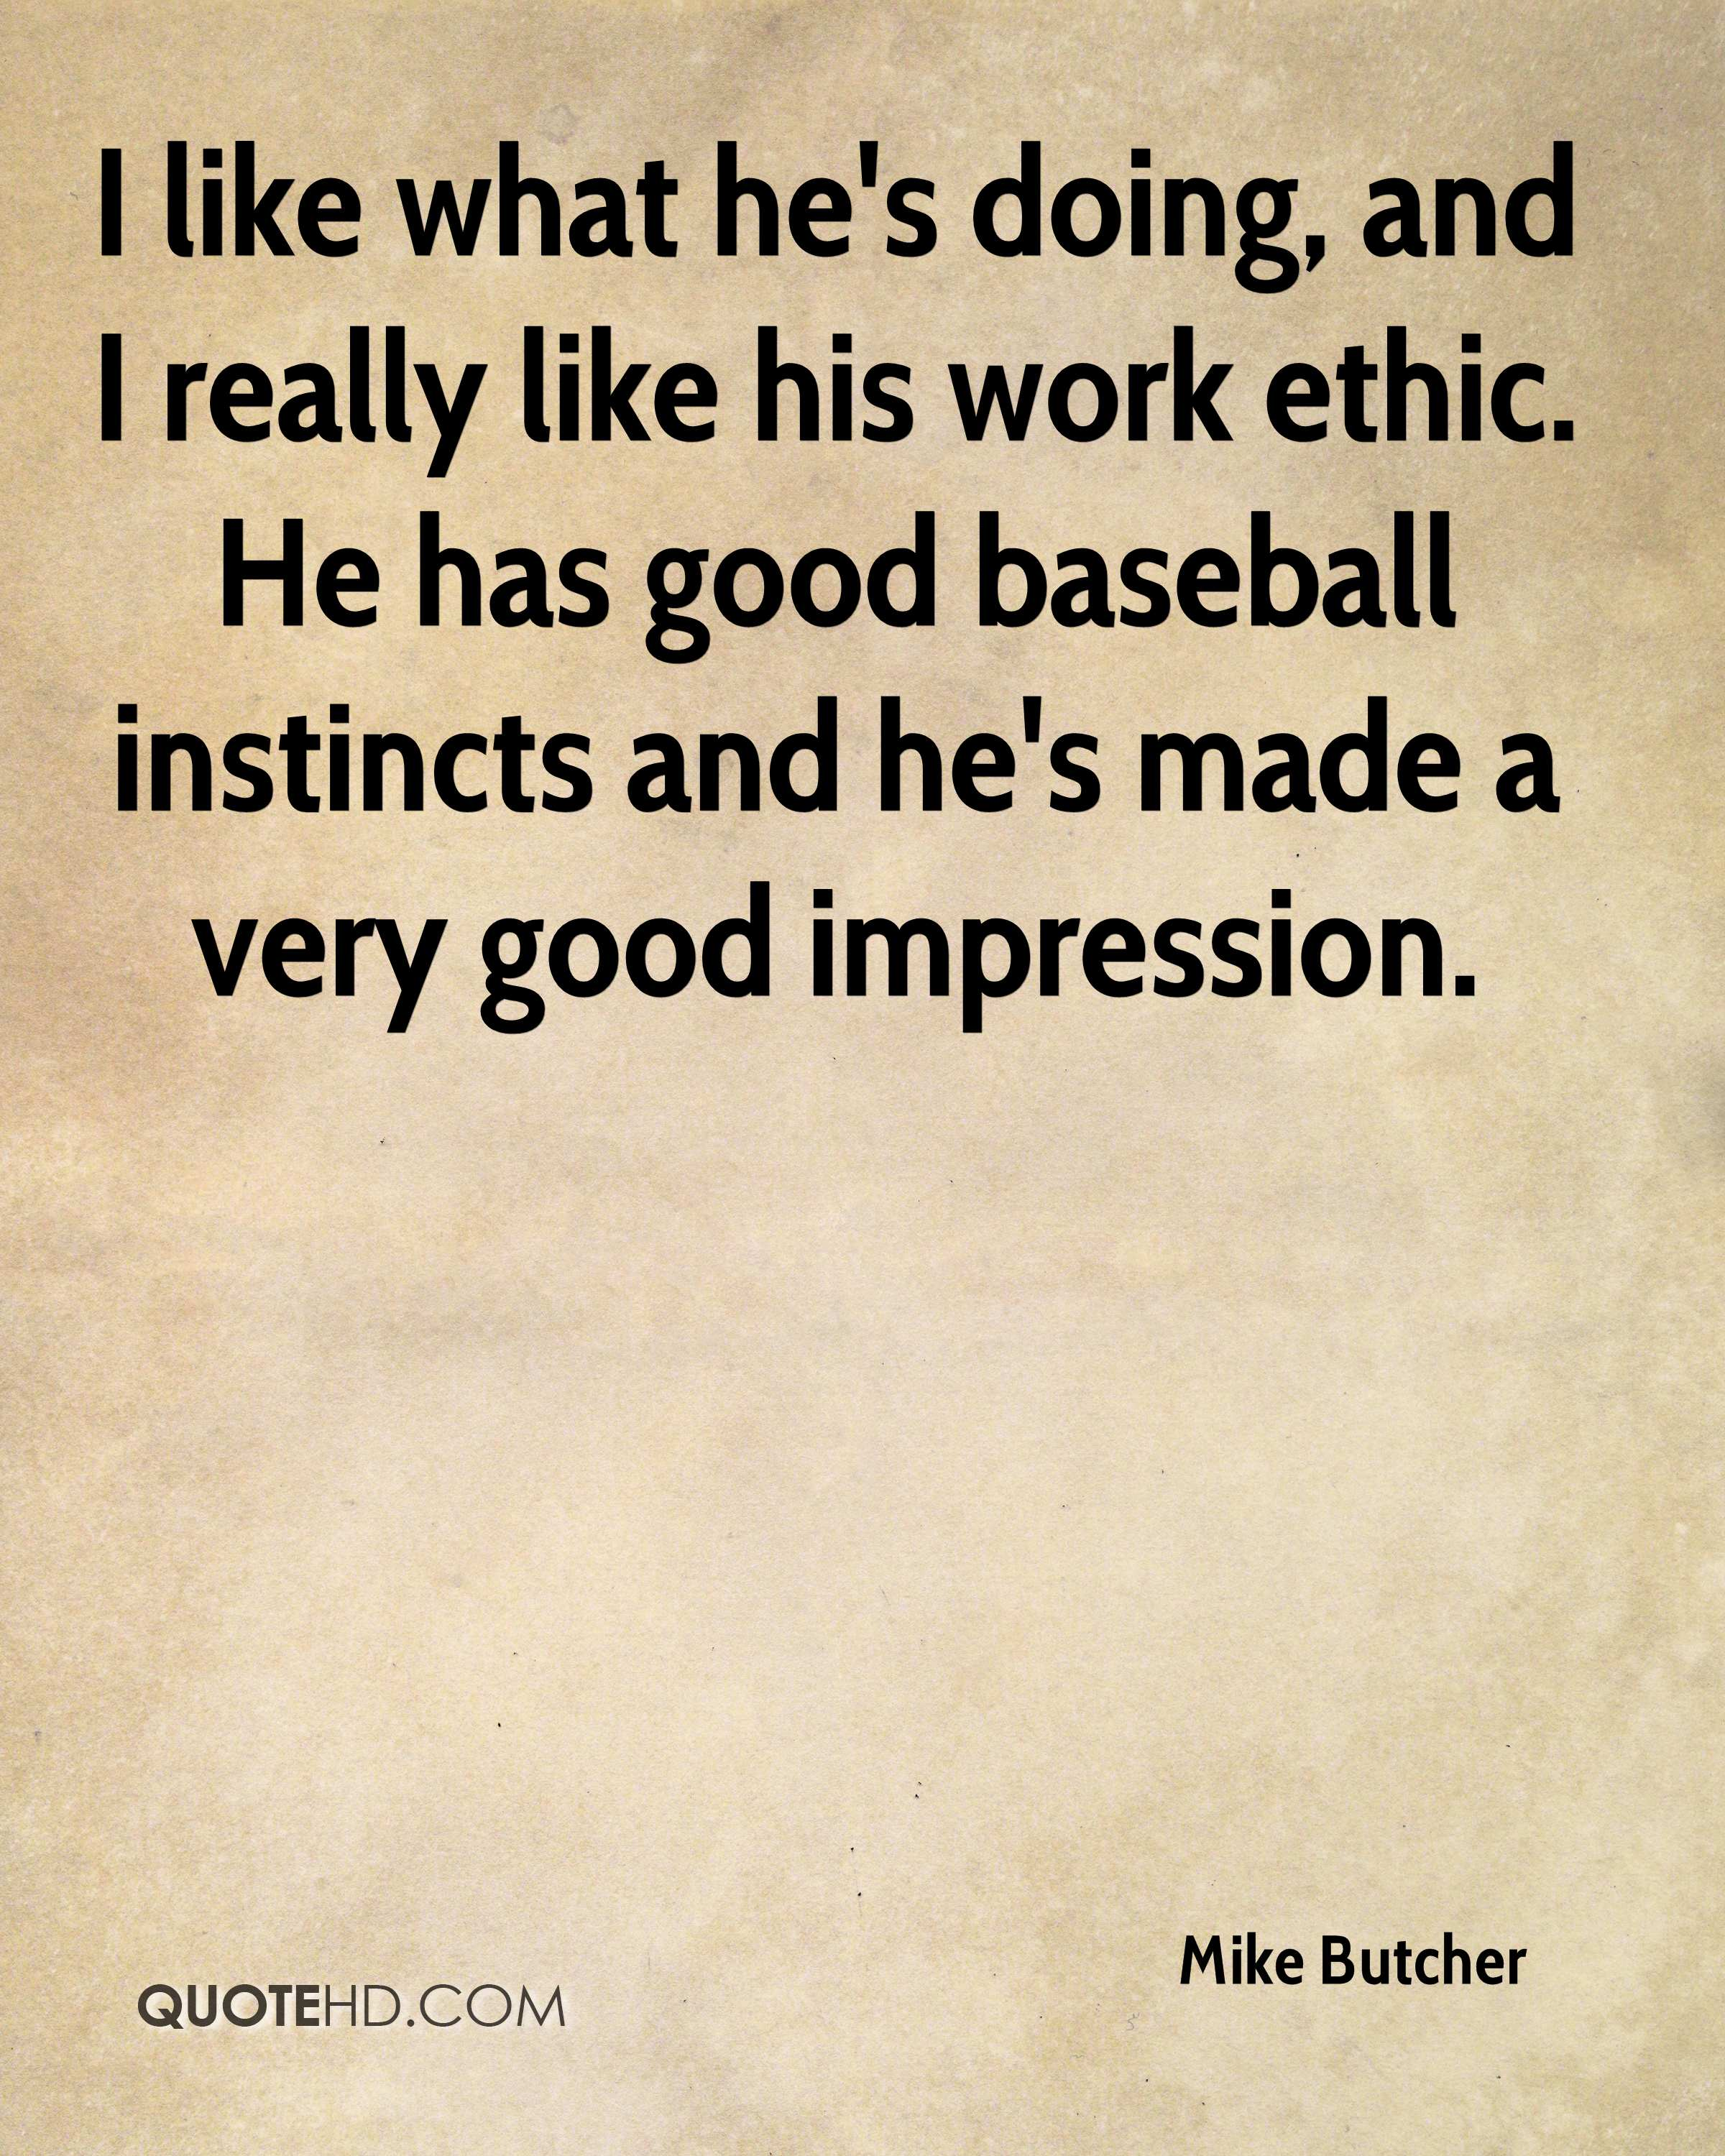 Good Baseball Quotes Mike Butcher Quotes  Quotehd